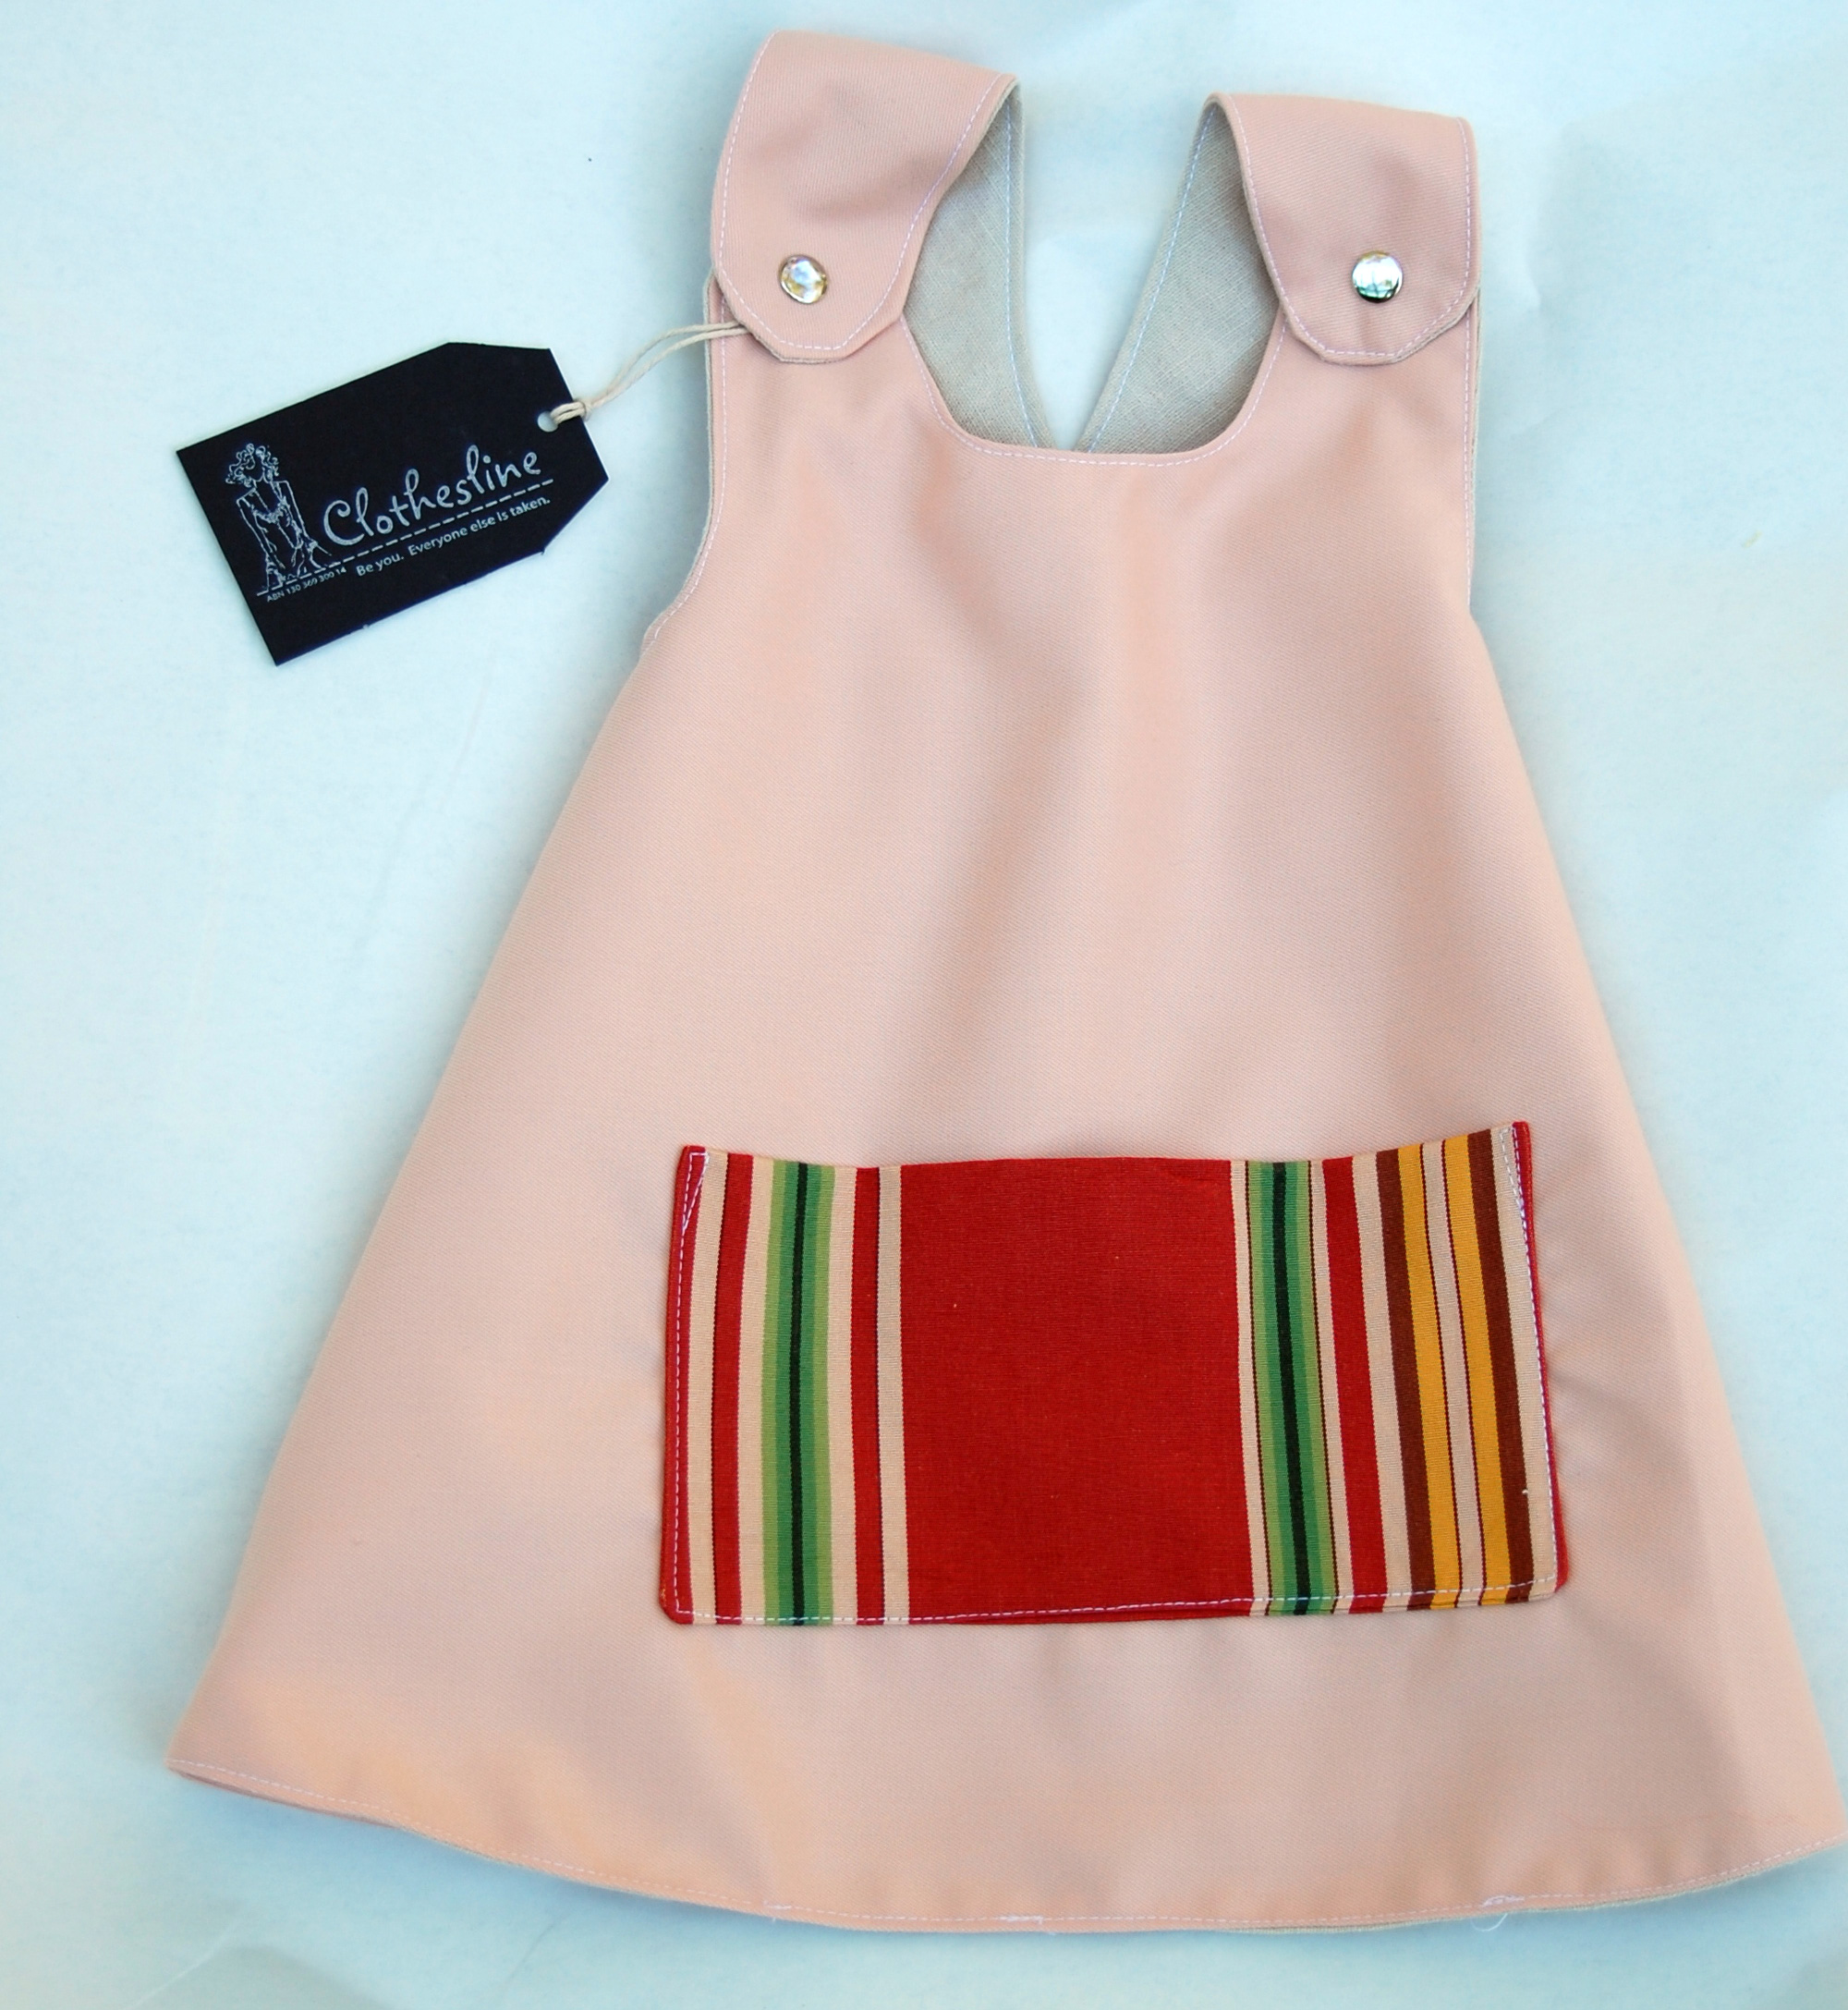 Sweet apron dress for a one-year-old. Pocket upcycled from some upholstery fabric samples. It's reversible too for when you spill stuff on the front!